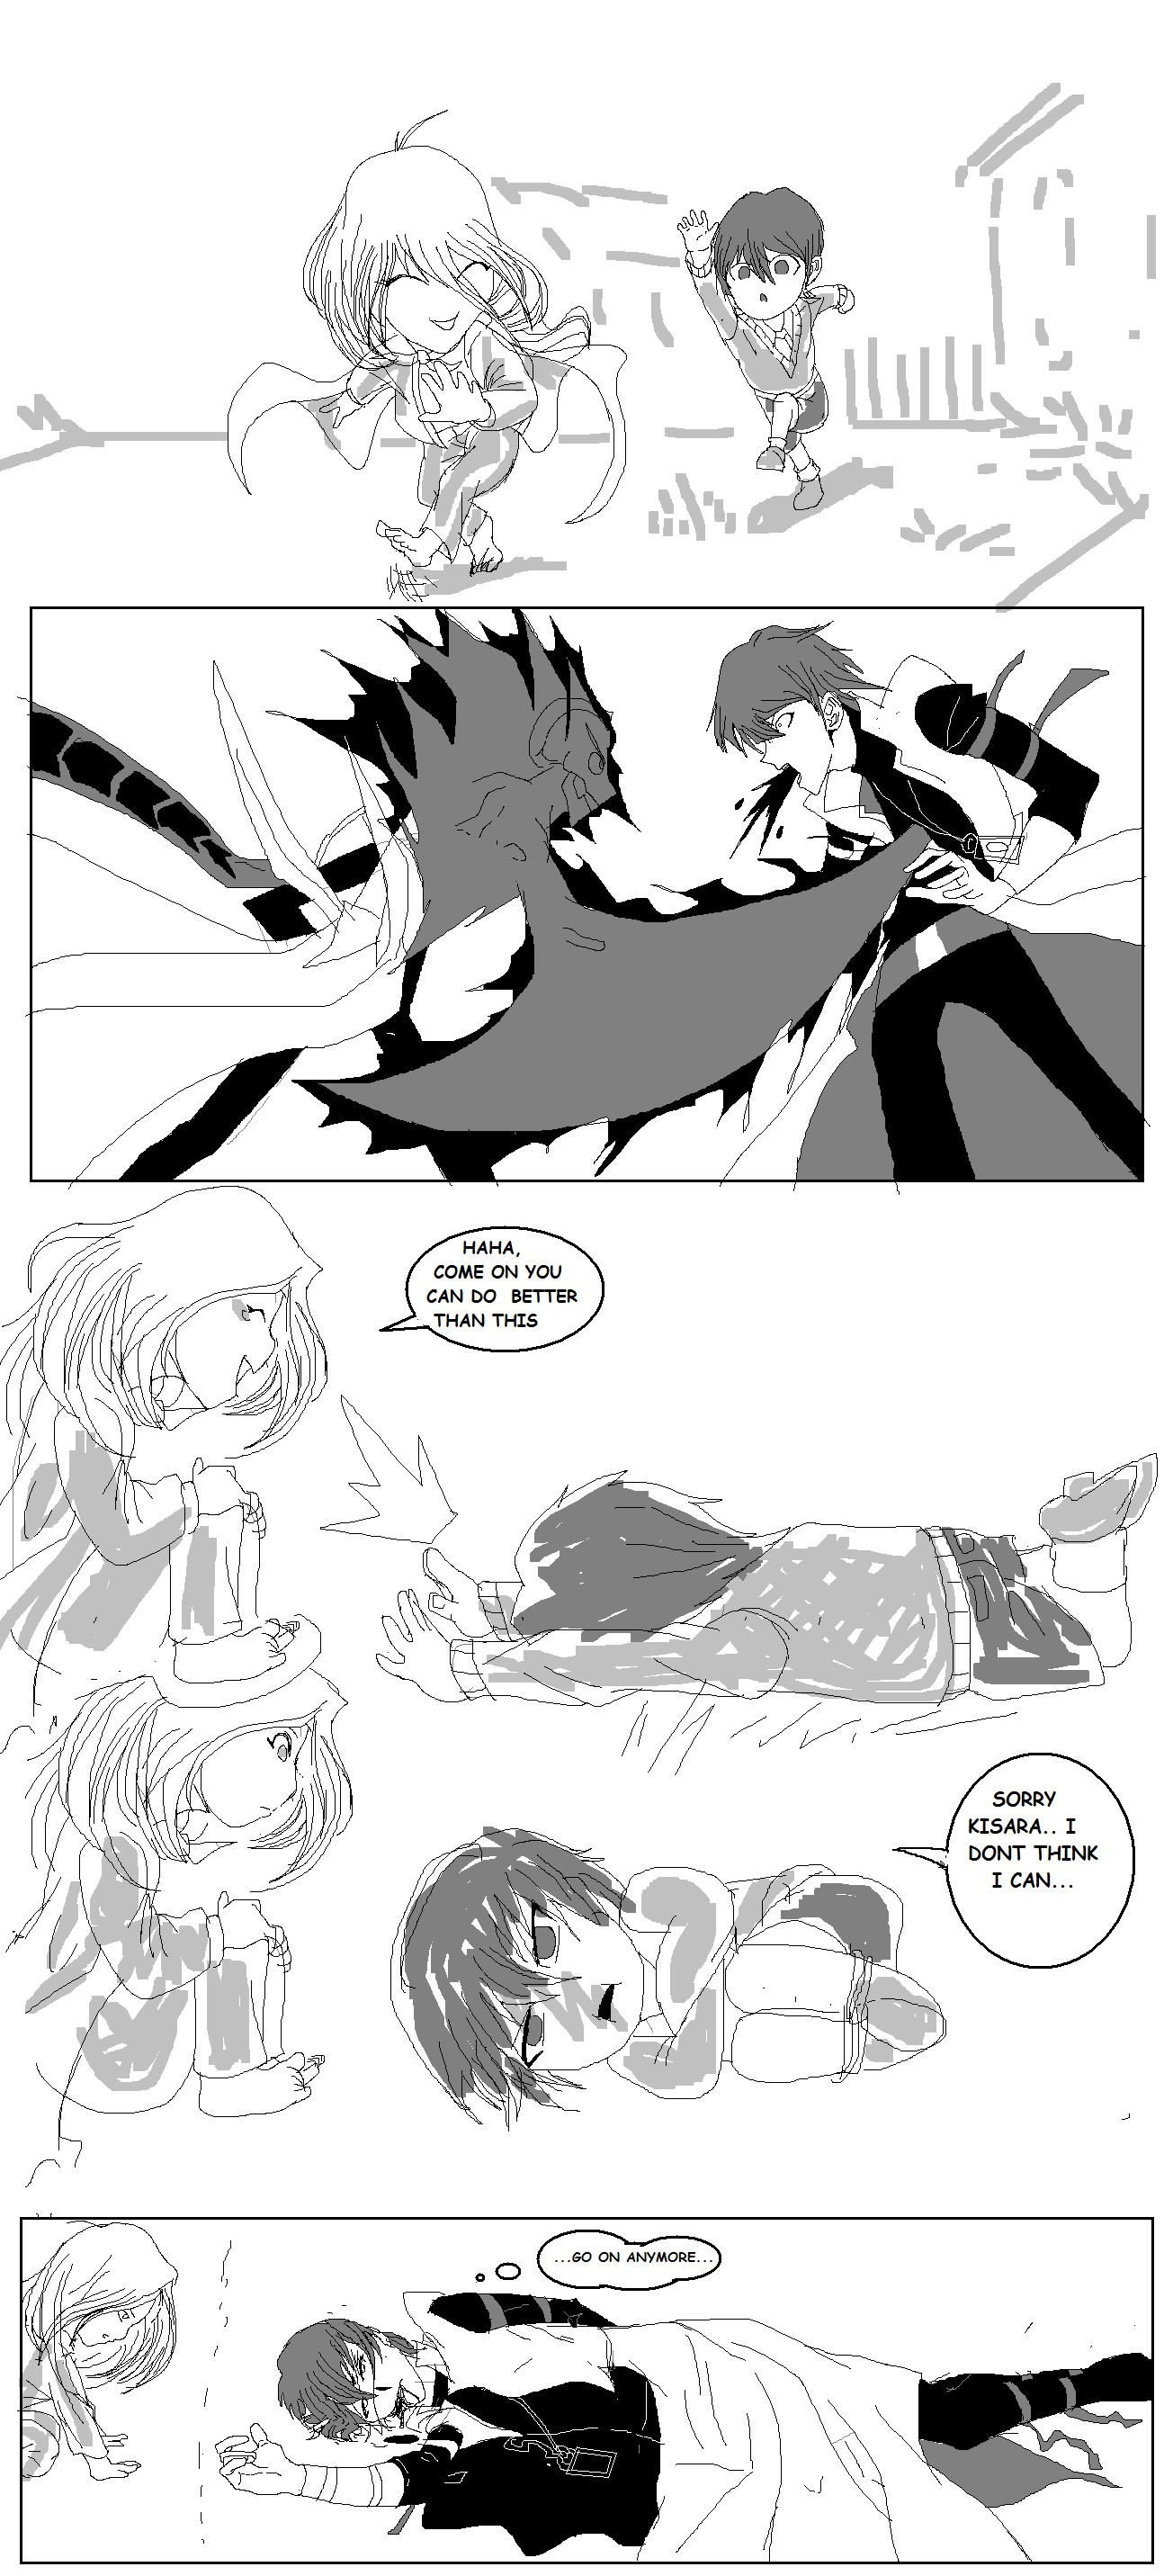 Yu-Gi-Oh! bonds beyond time II Chapter 4 Untitled__by_mrawesome45-d77rb10